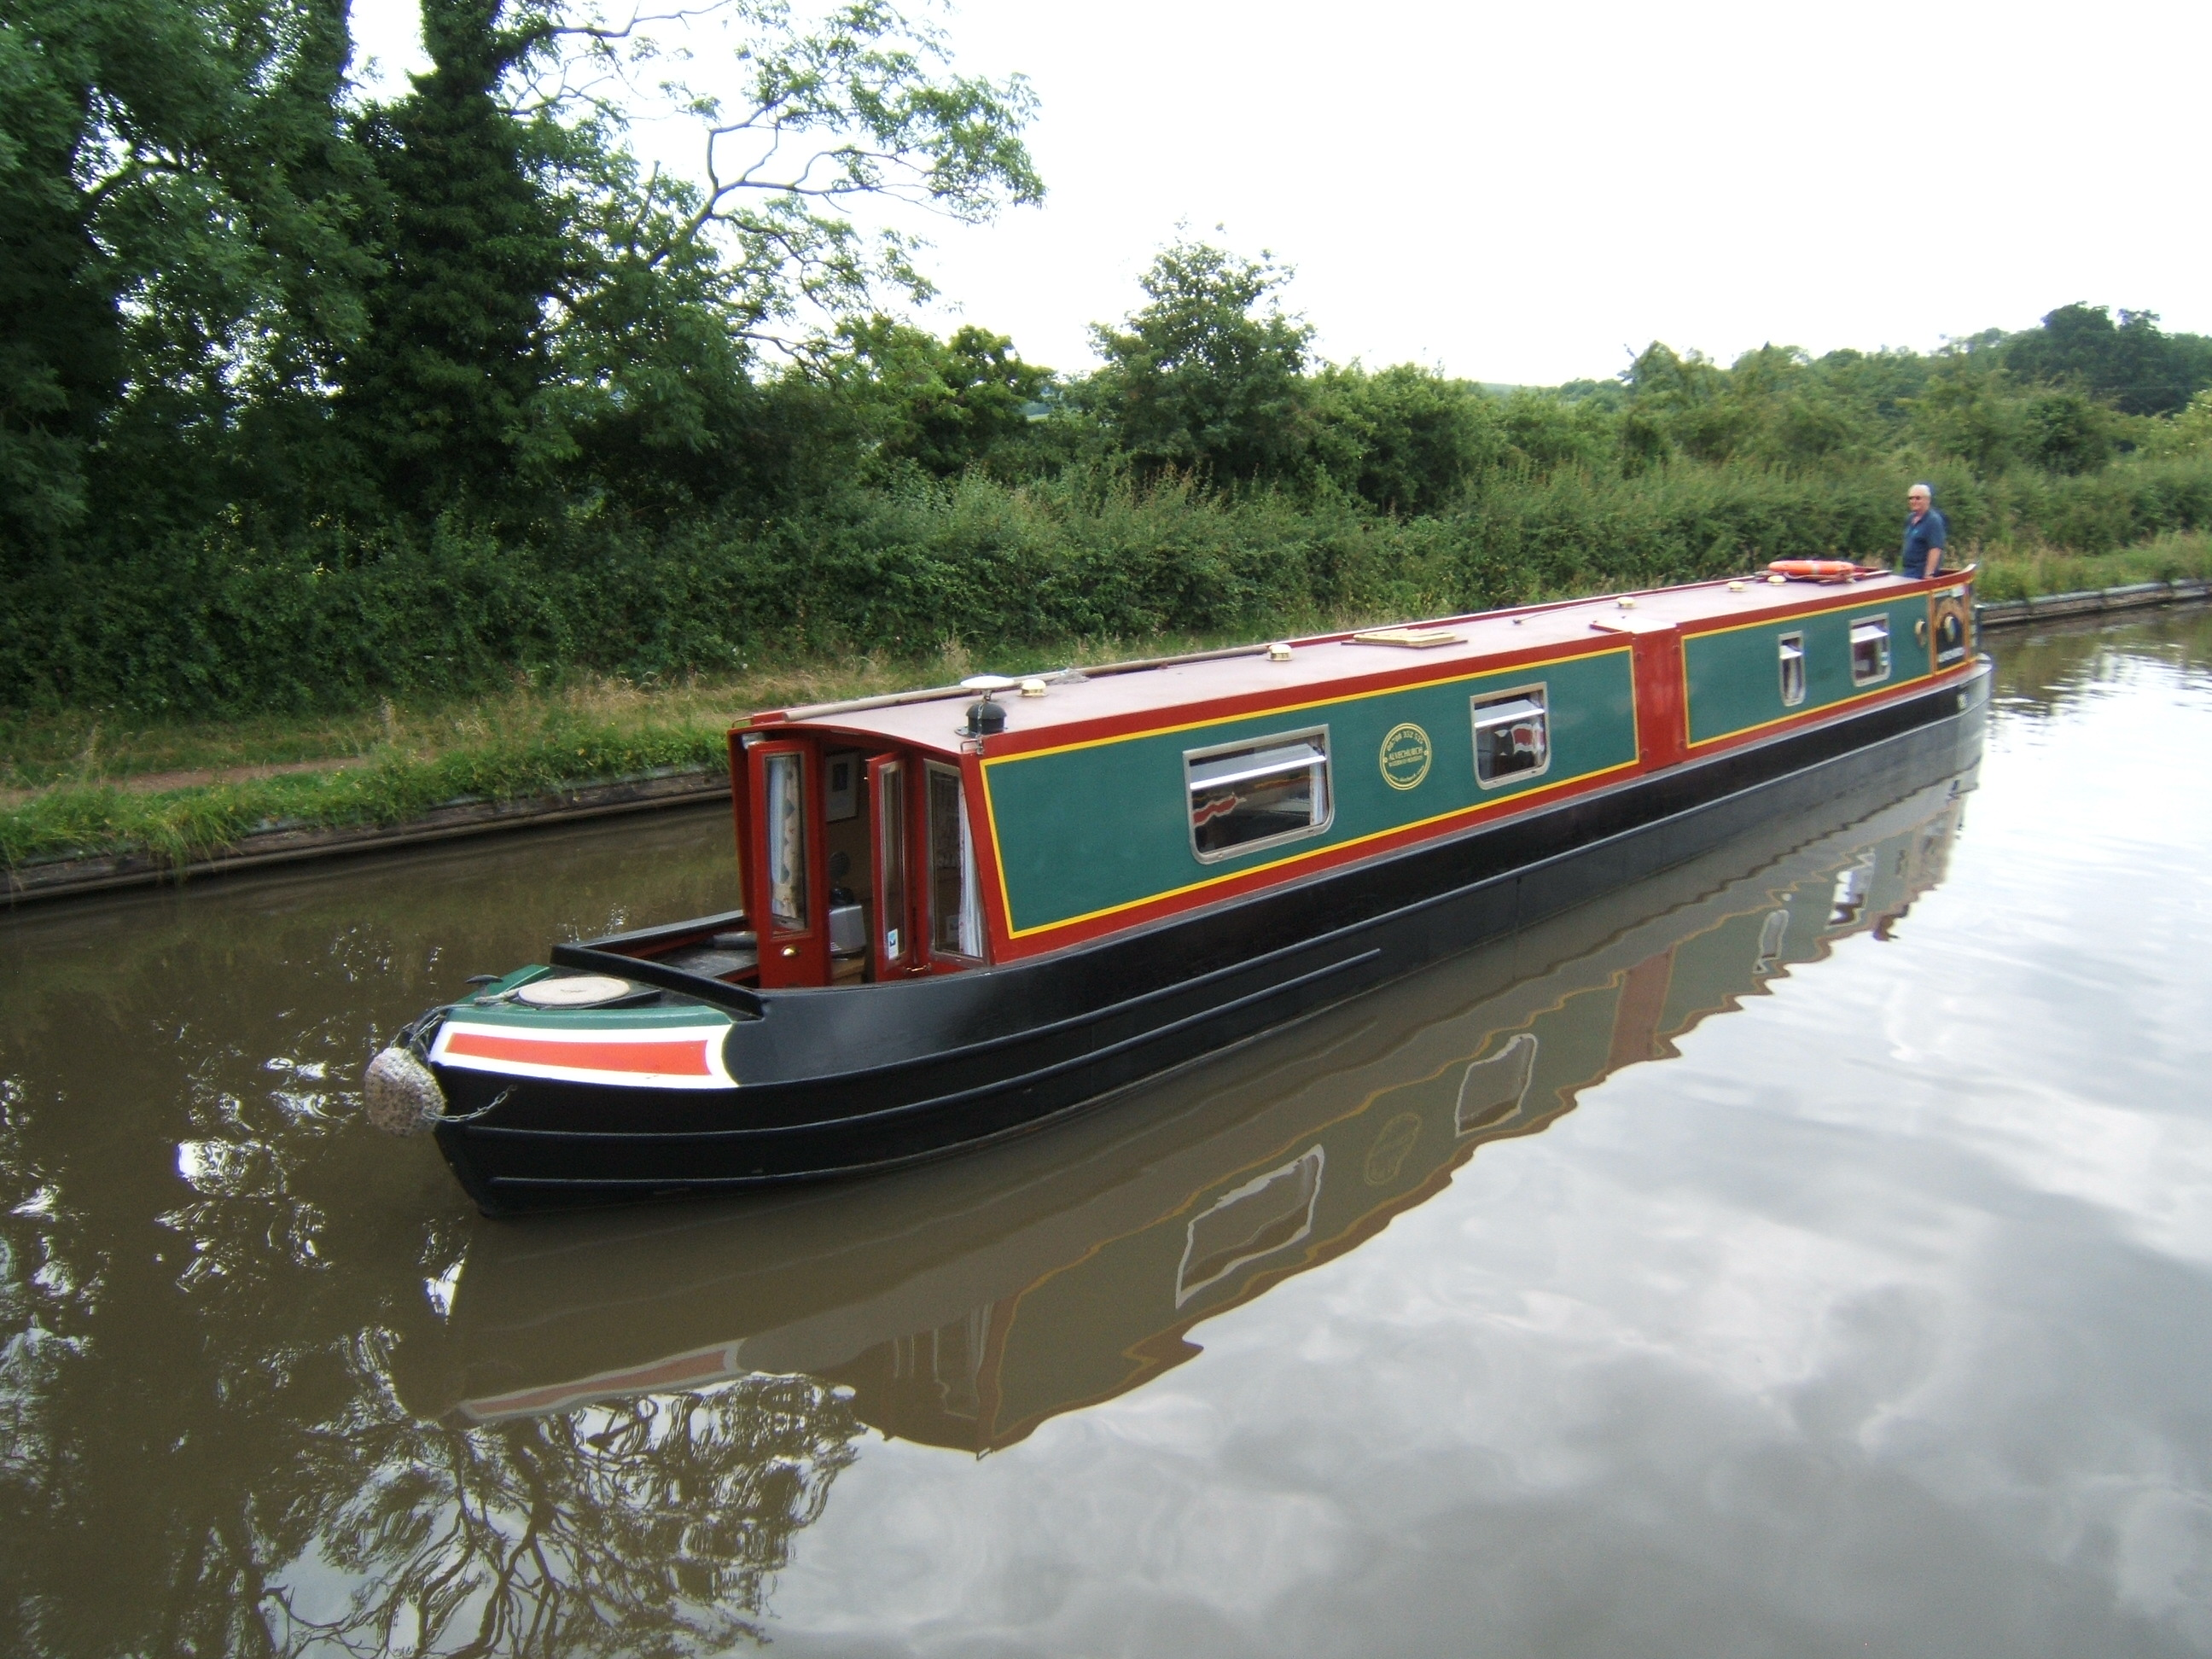 The Plover class canal boat